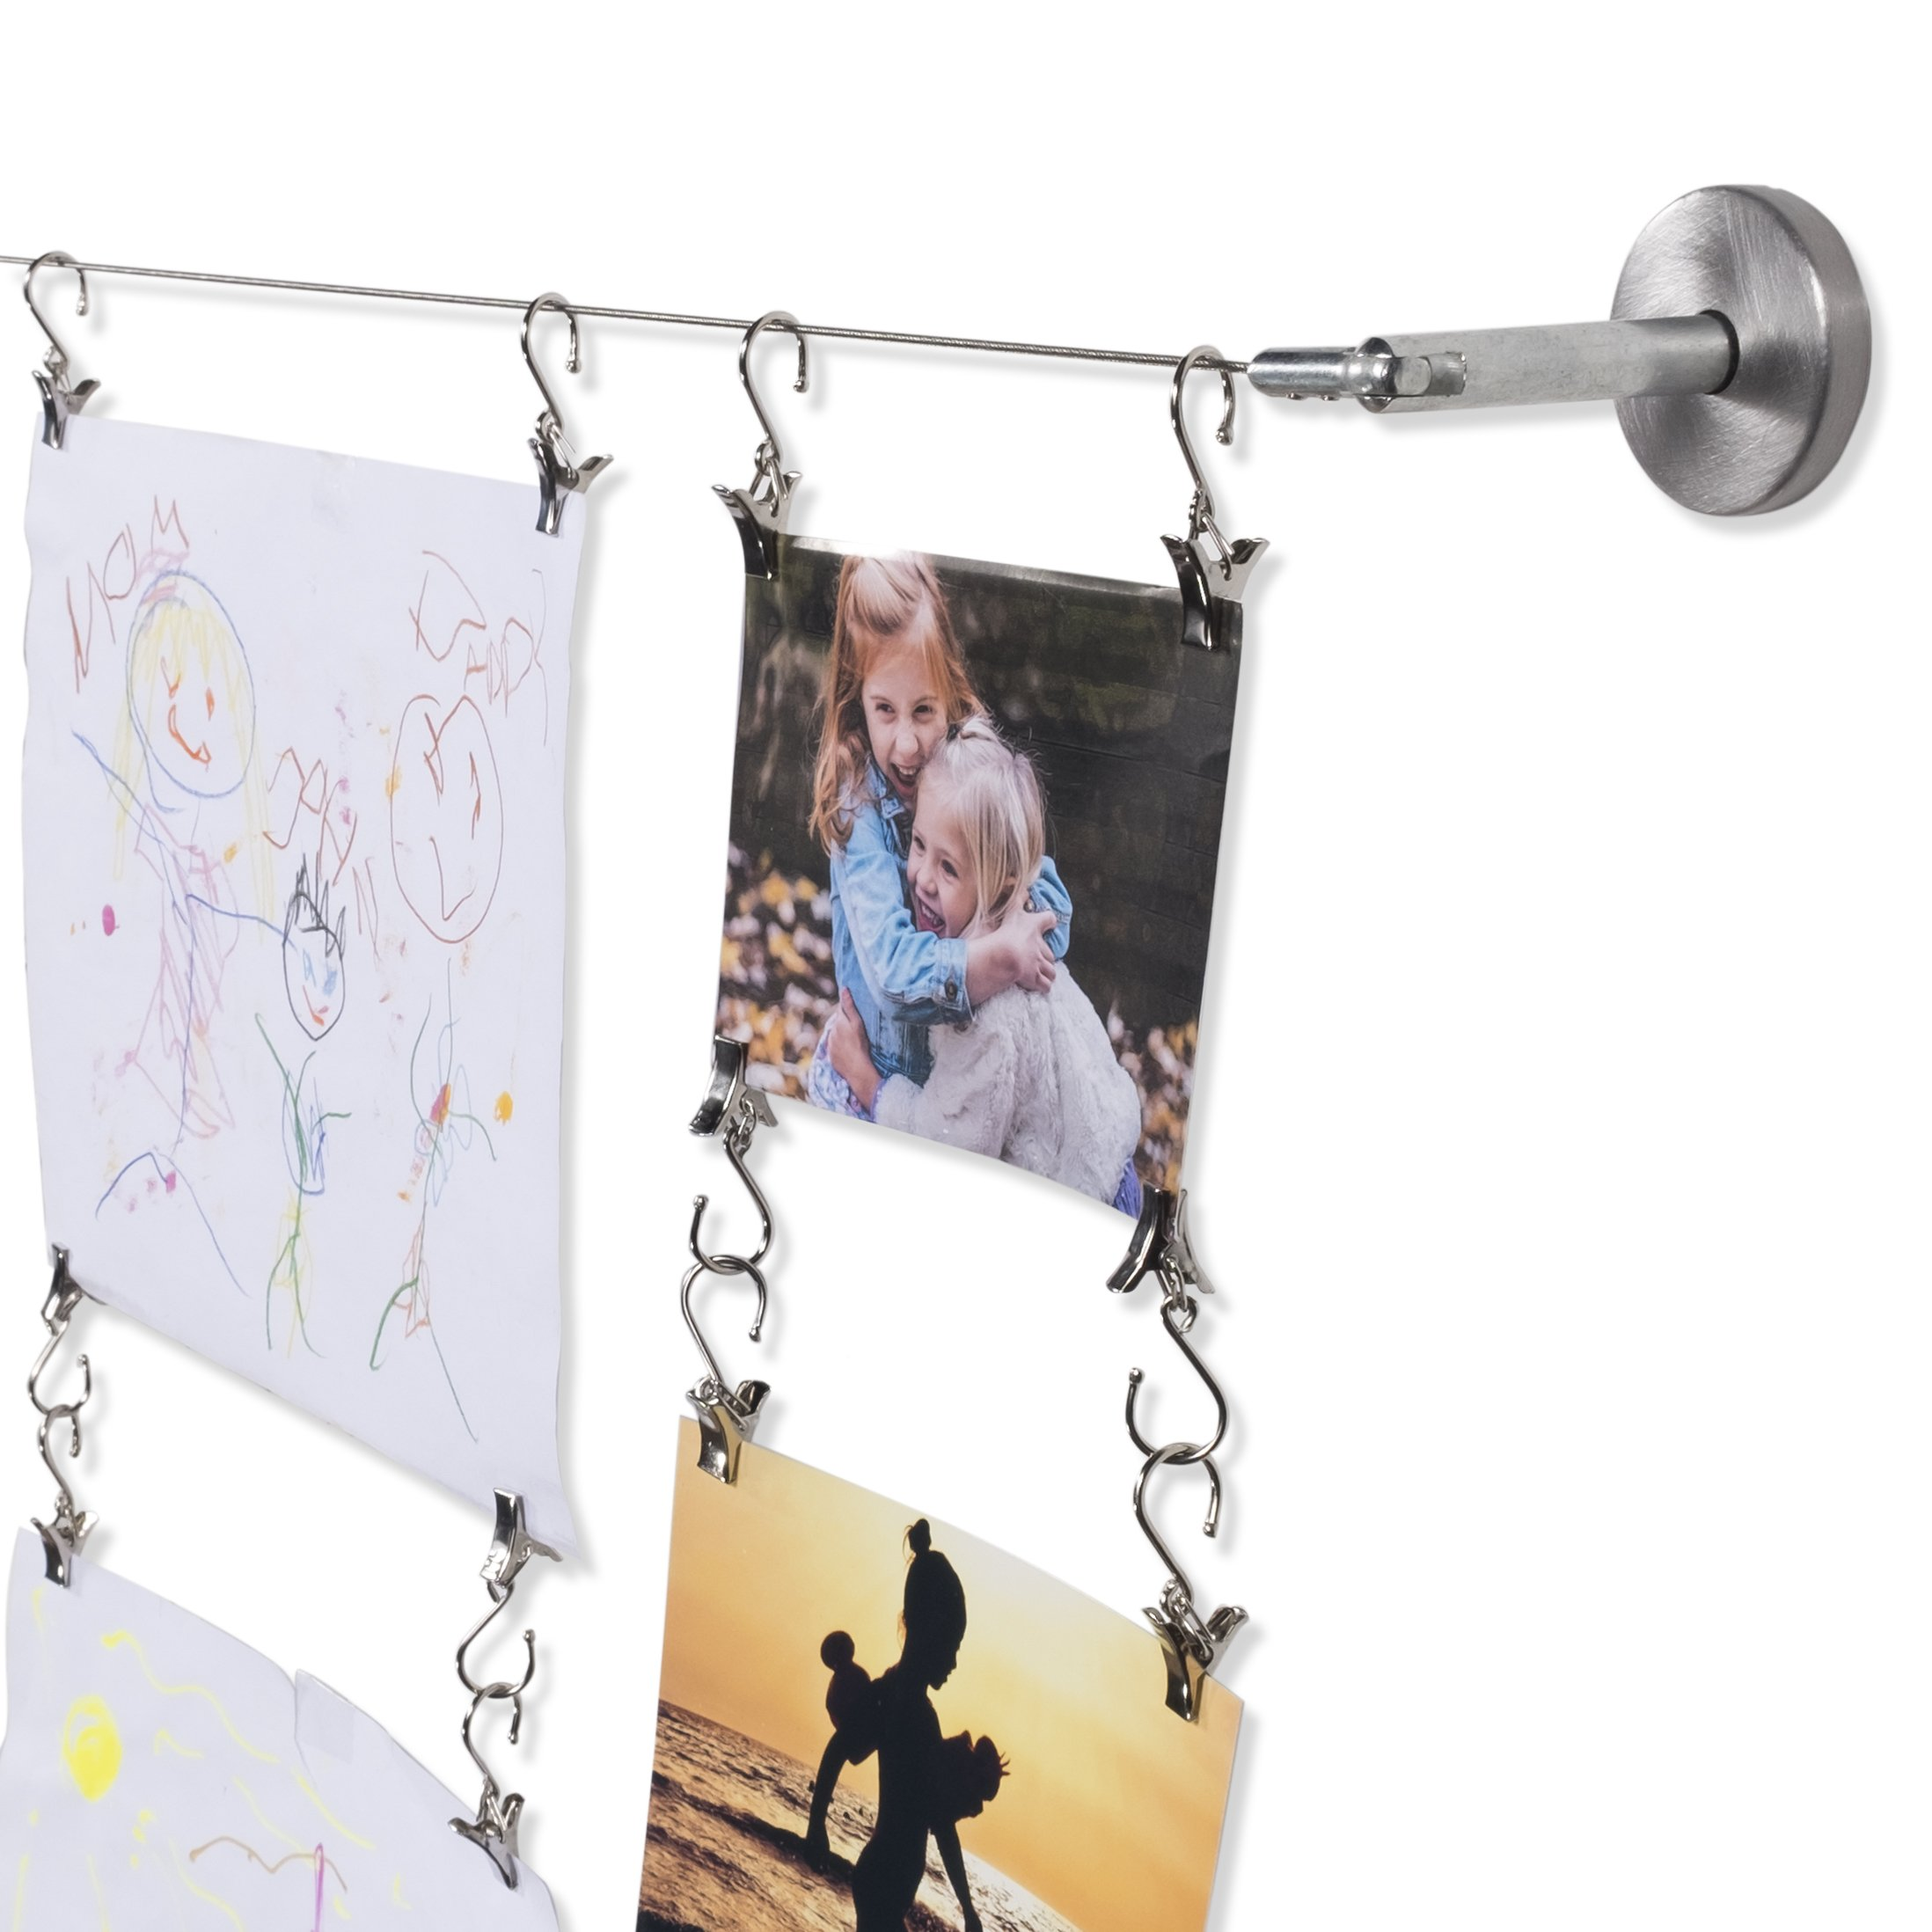 Fasthomegoods Wall Mount Children's Art Projects Display Stainless Steel Wire Rod with 48 Hanging Clips 16.5 Feet Long